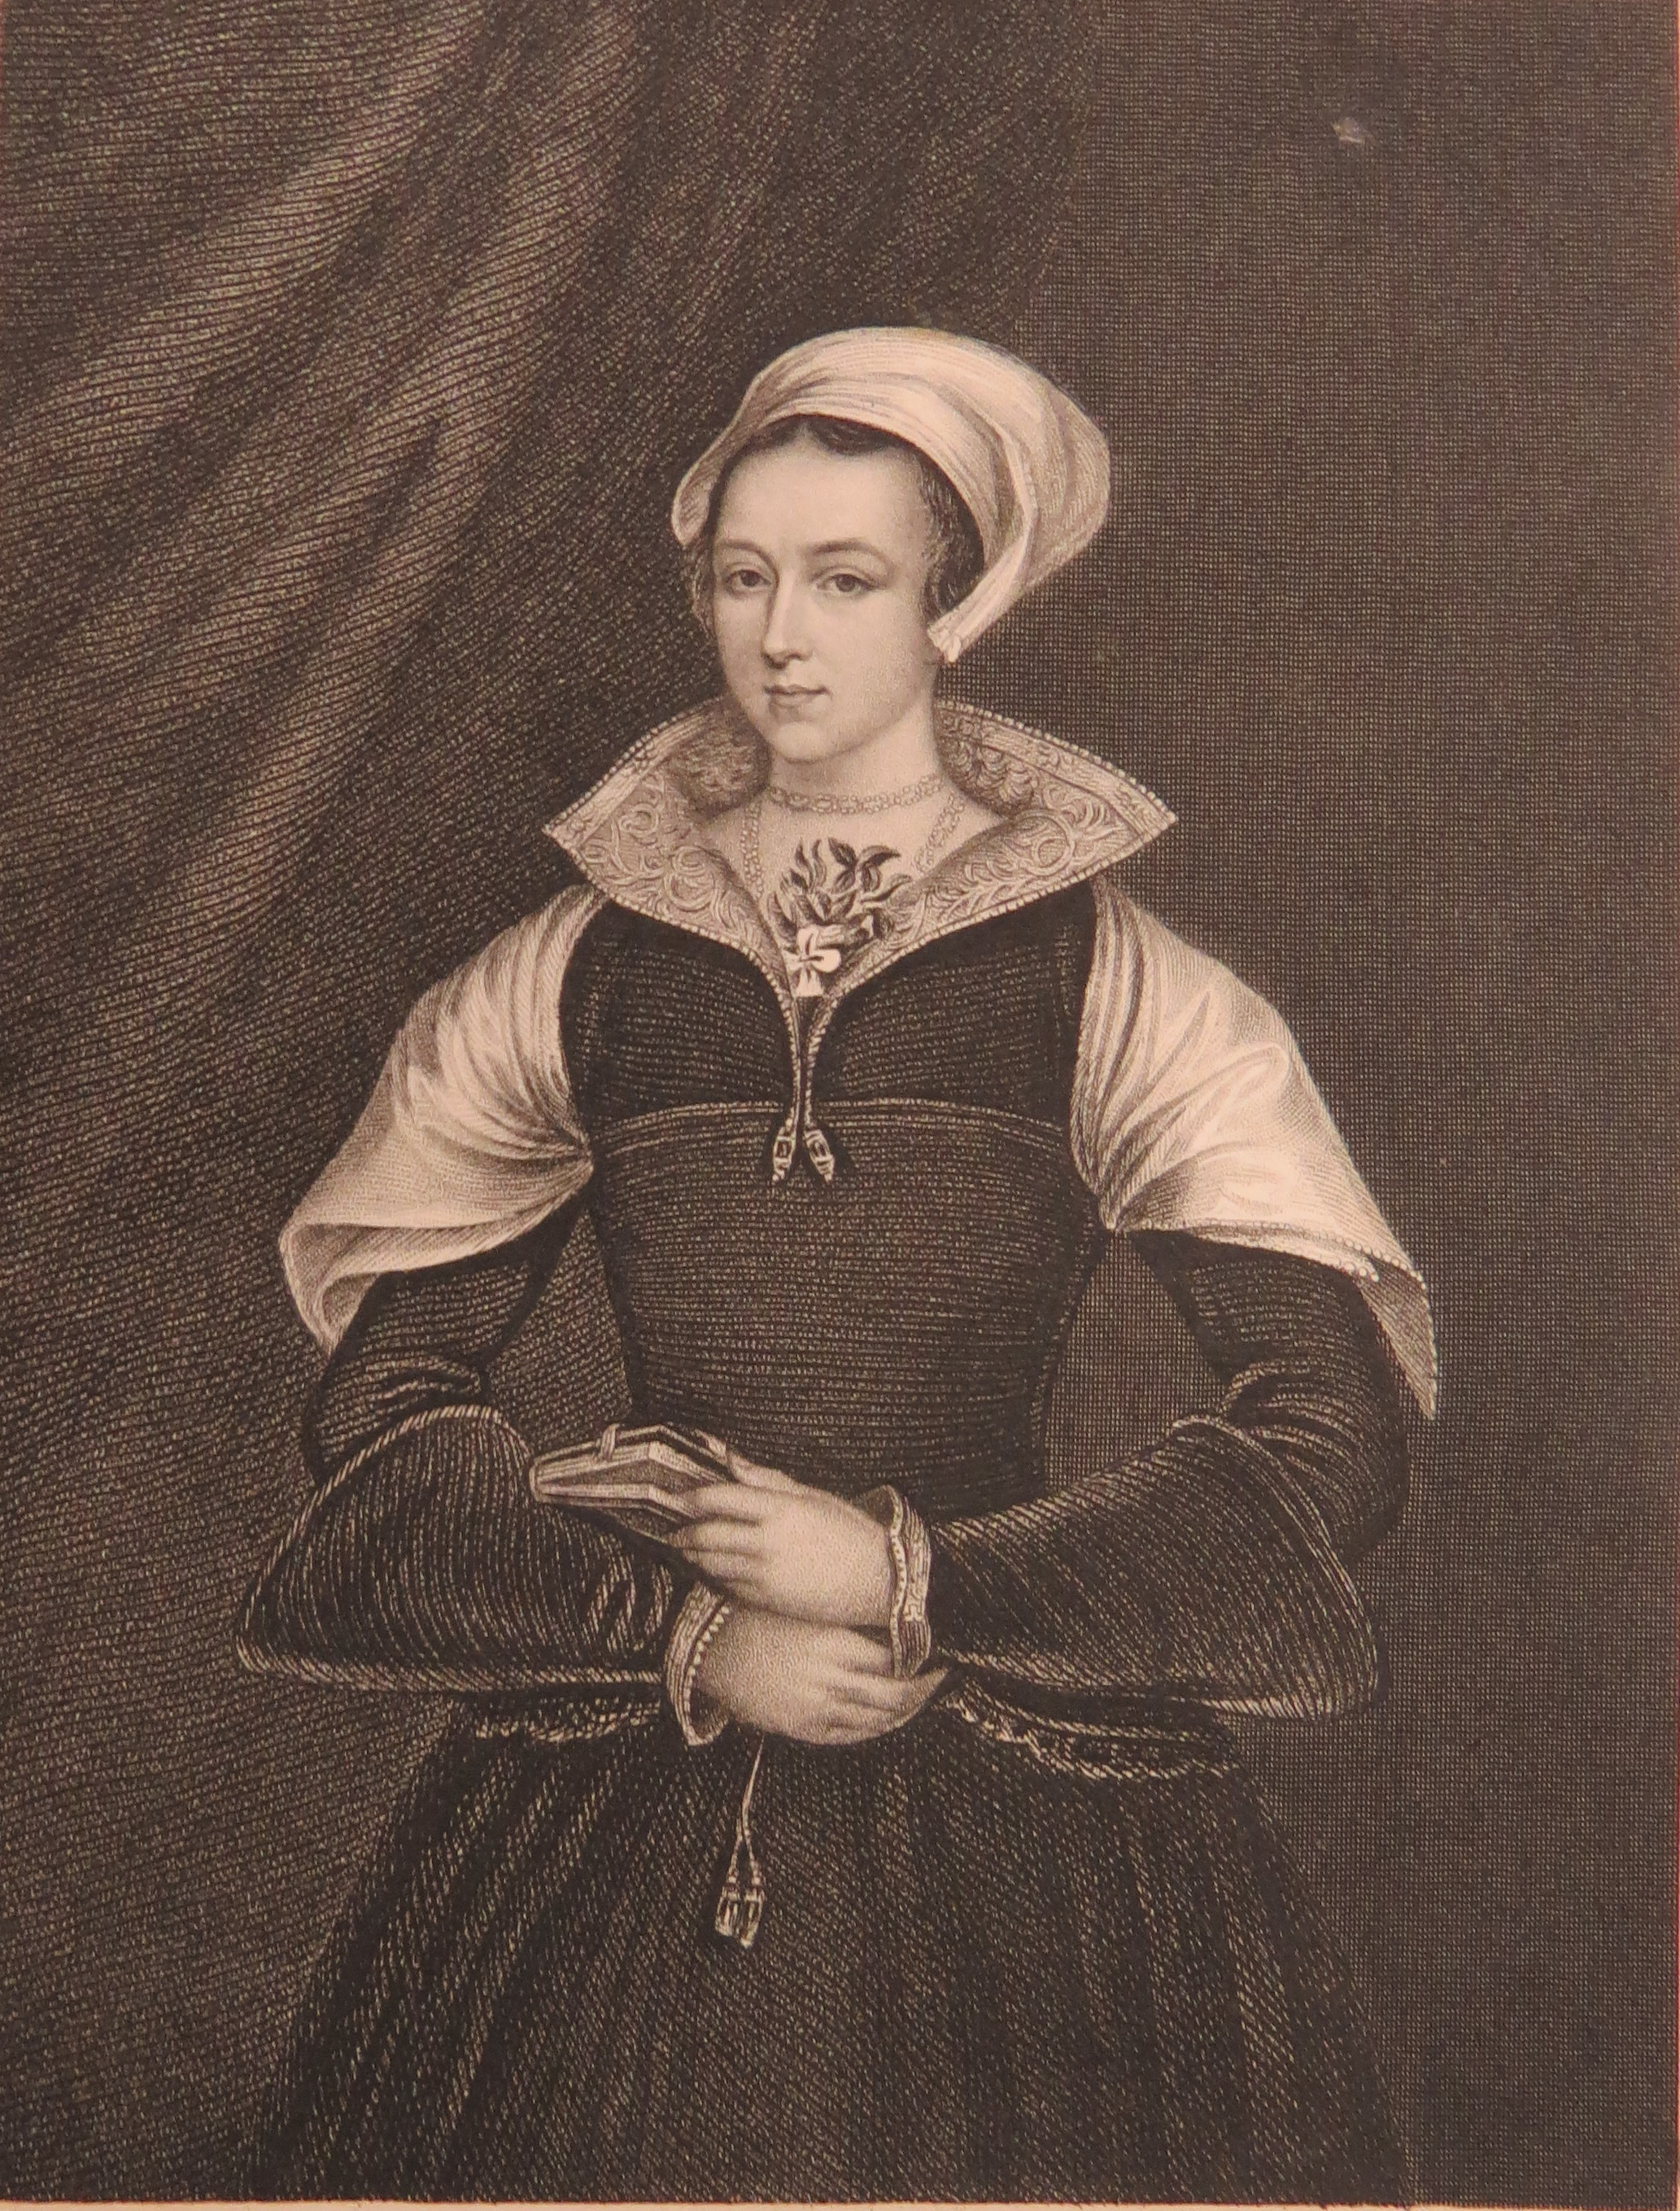 Lady Jane Grey was also killed at the Tower of London